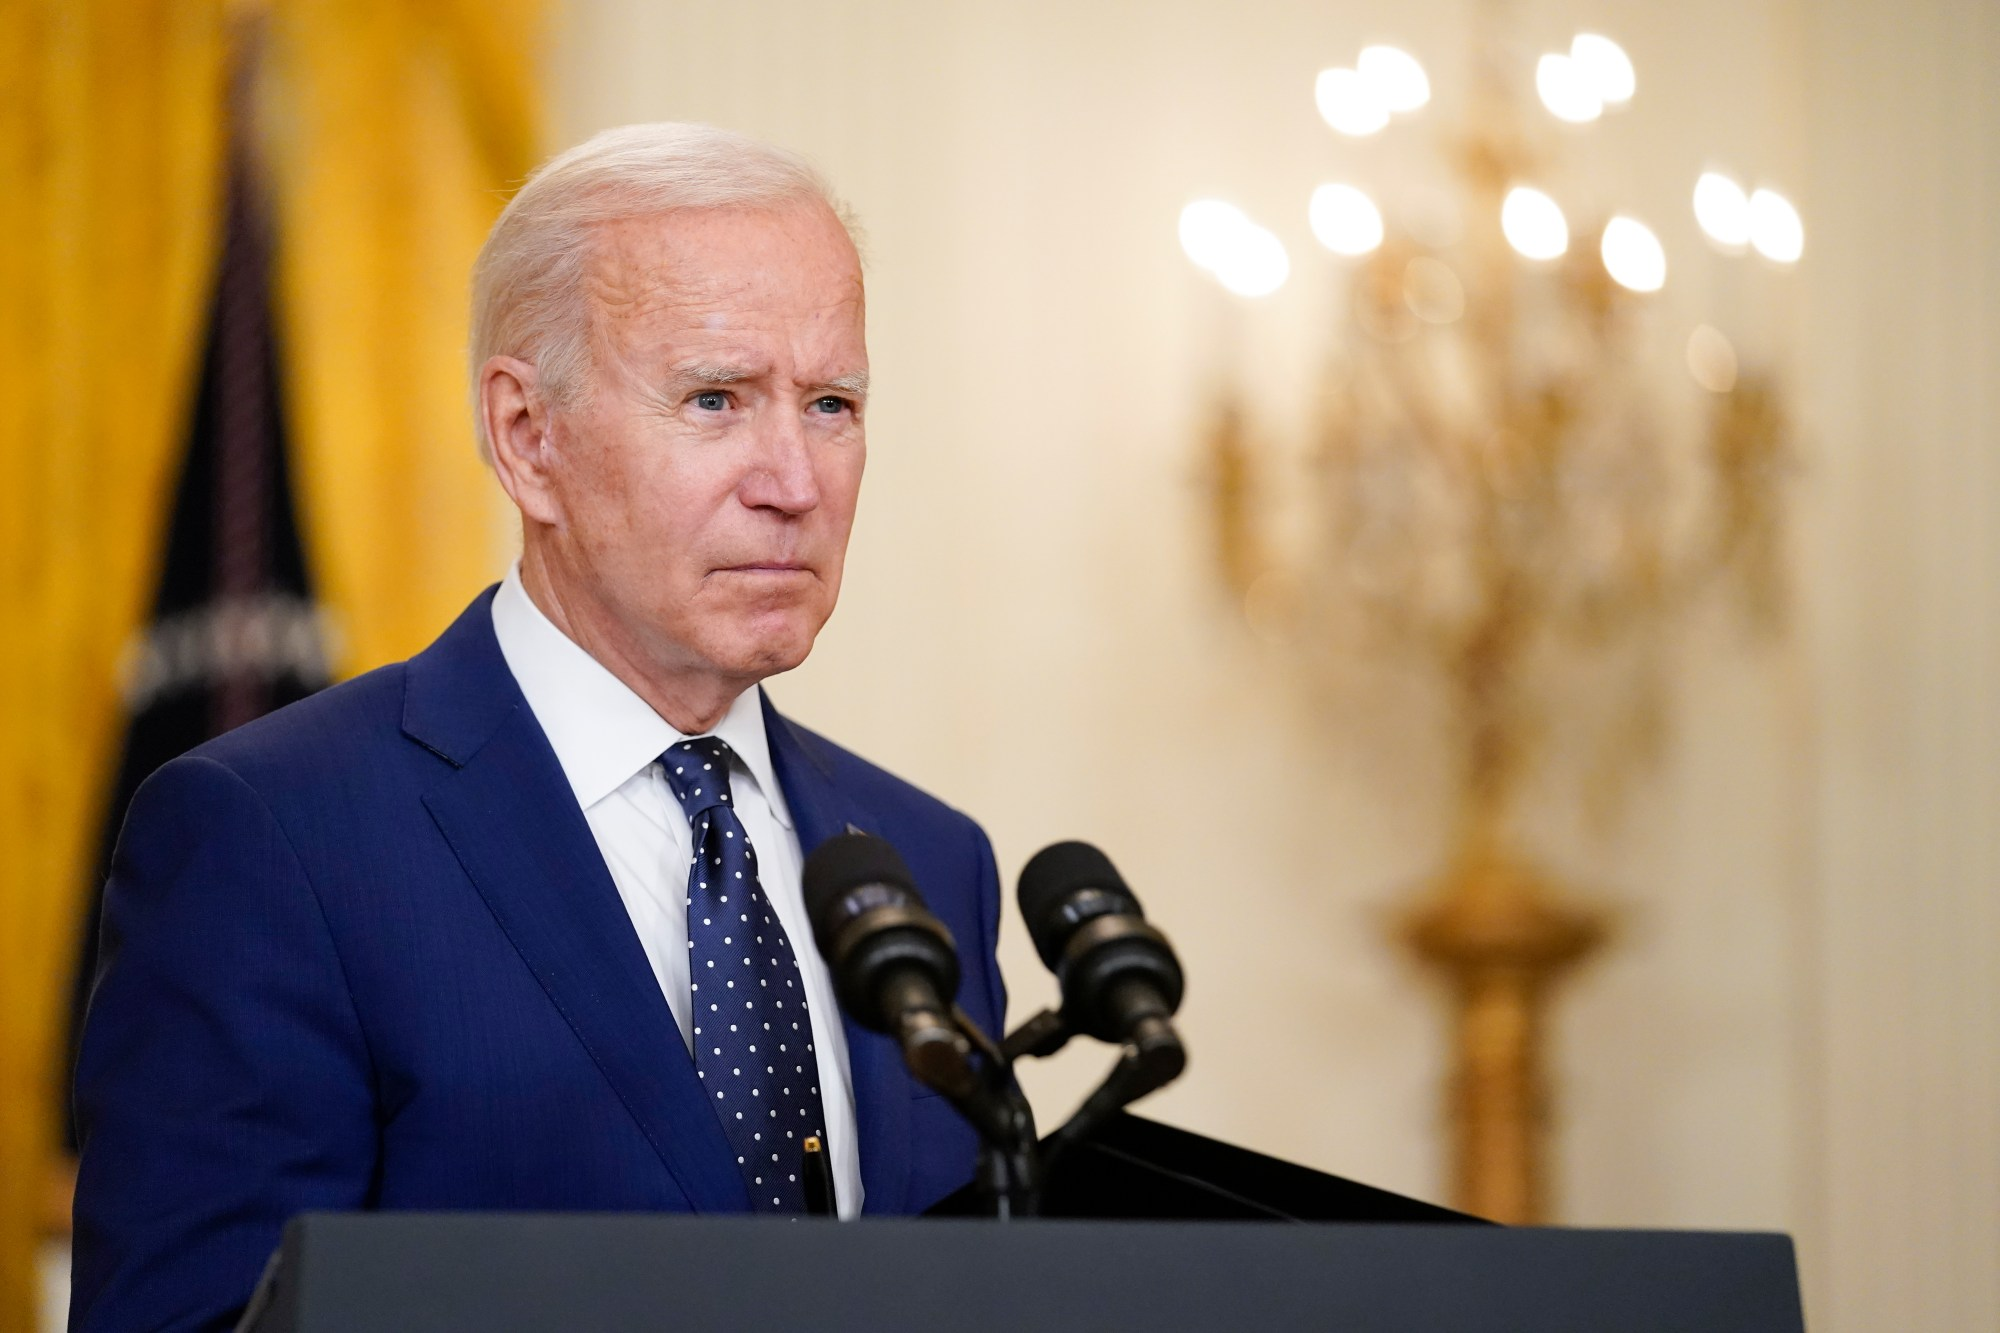 President Joe Biden speaks in the East Room of the White House on April 15, 2021, in Washington. (AP Photo/Andrew Harnik)